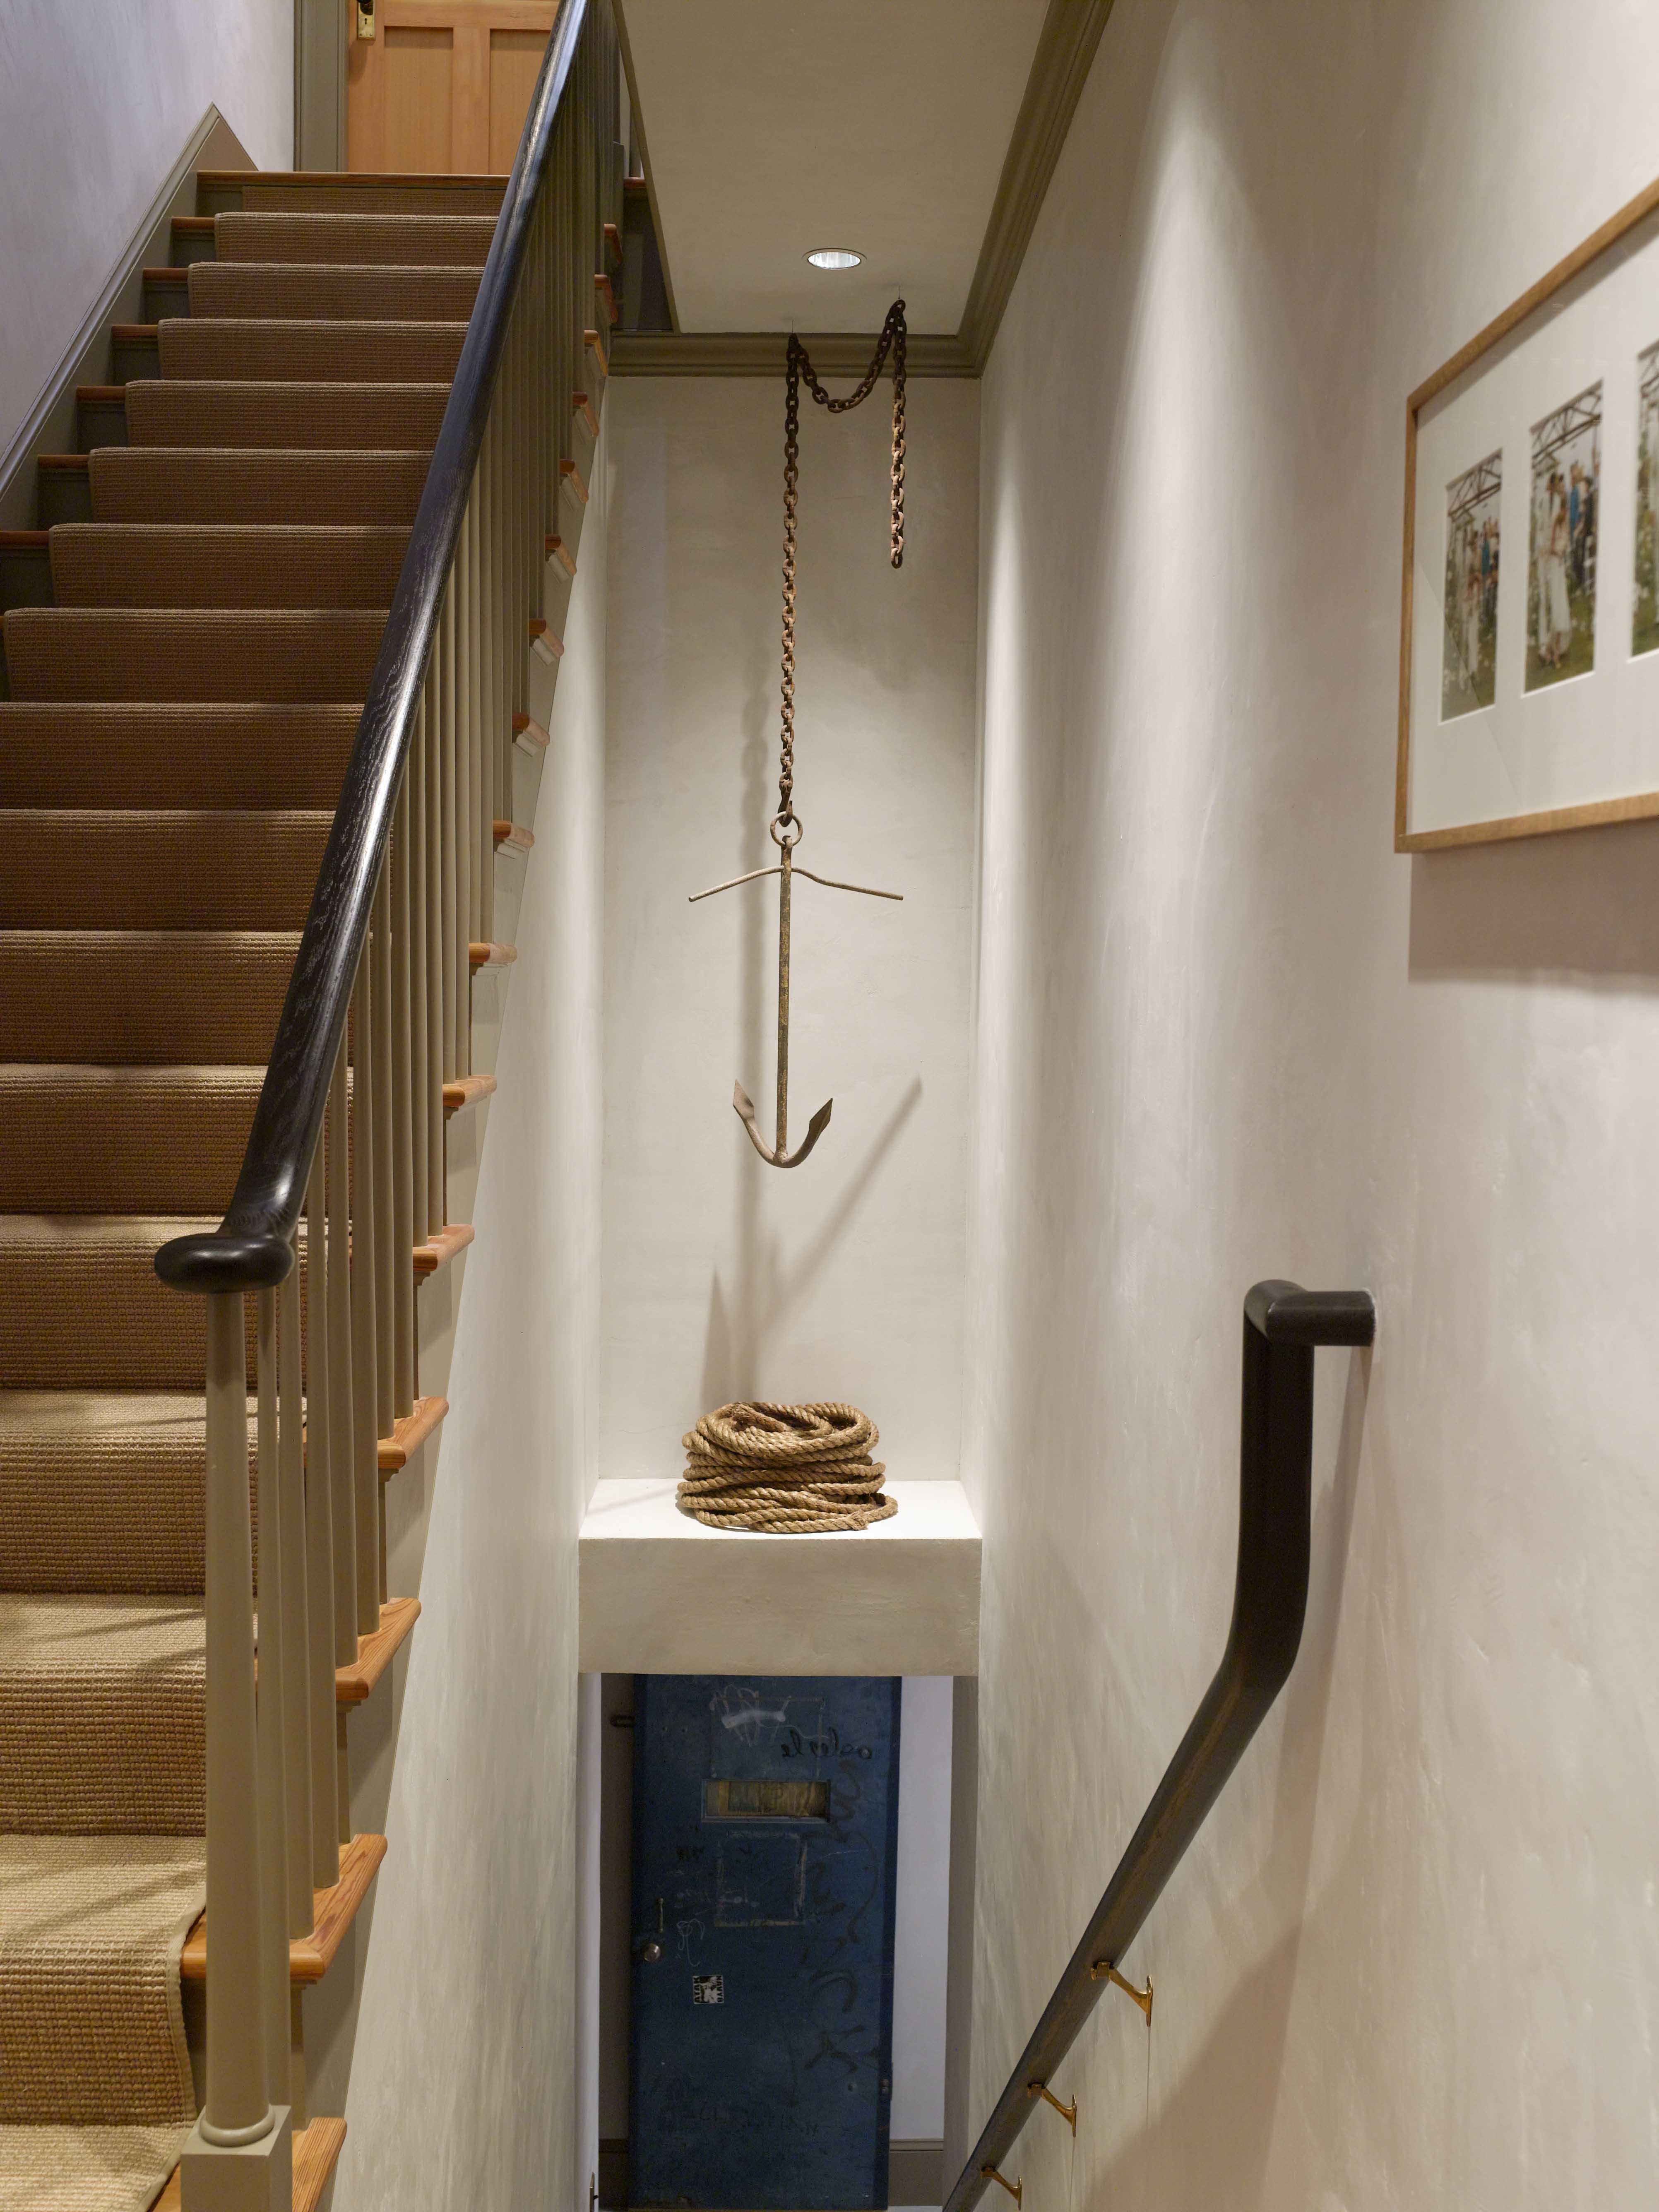 27 Stylish Staircase Decorating Ideas How To Decorate Stairways | Steps Design In Hall | Duplex House | Style Indian | Concept | Beautiful | Front Main Entrance